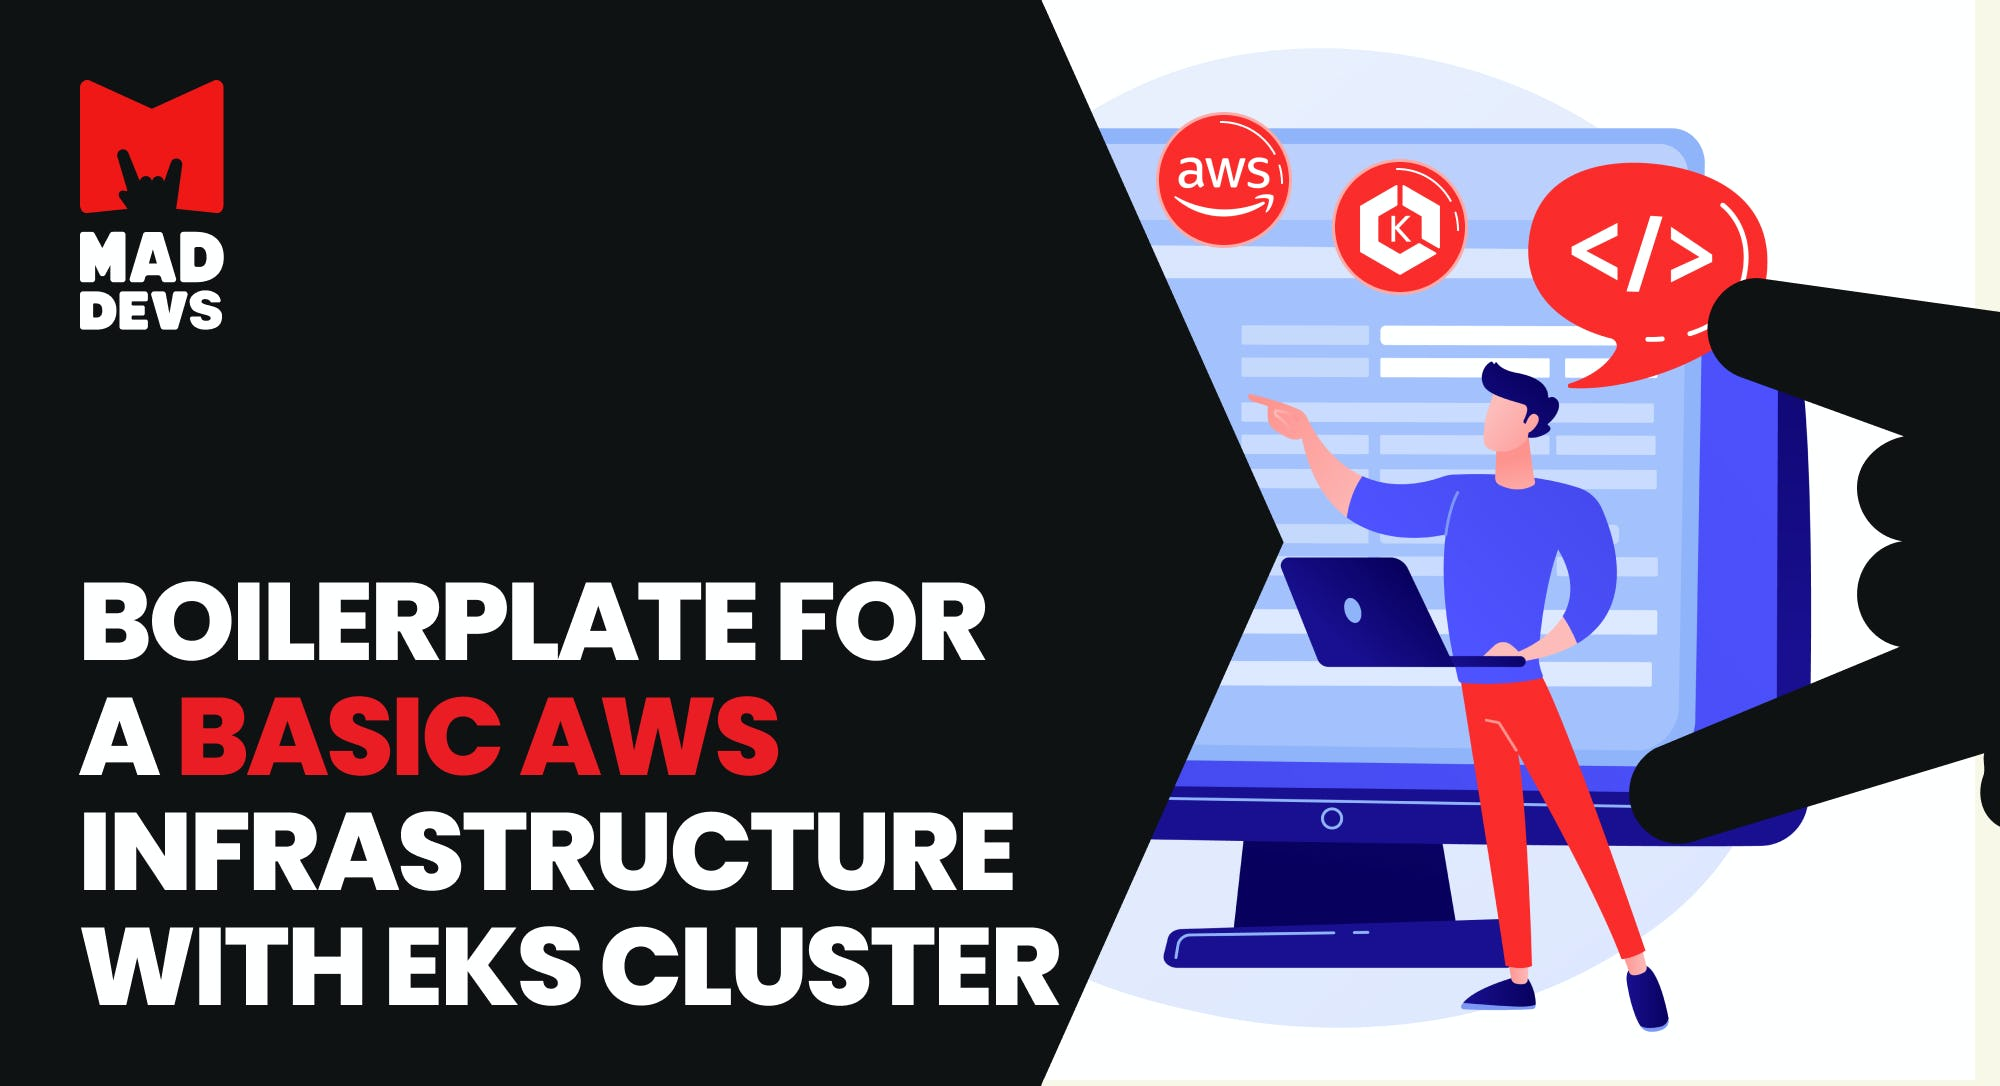 Boilerplate for Basic AWS Infrastructure with EKS Cluster.